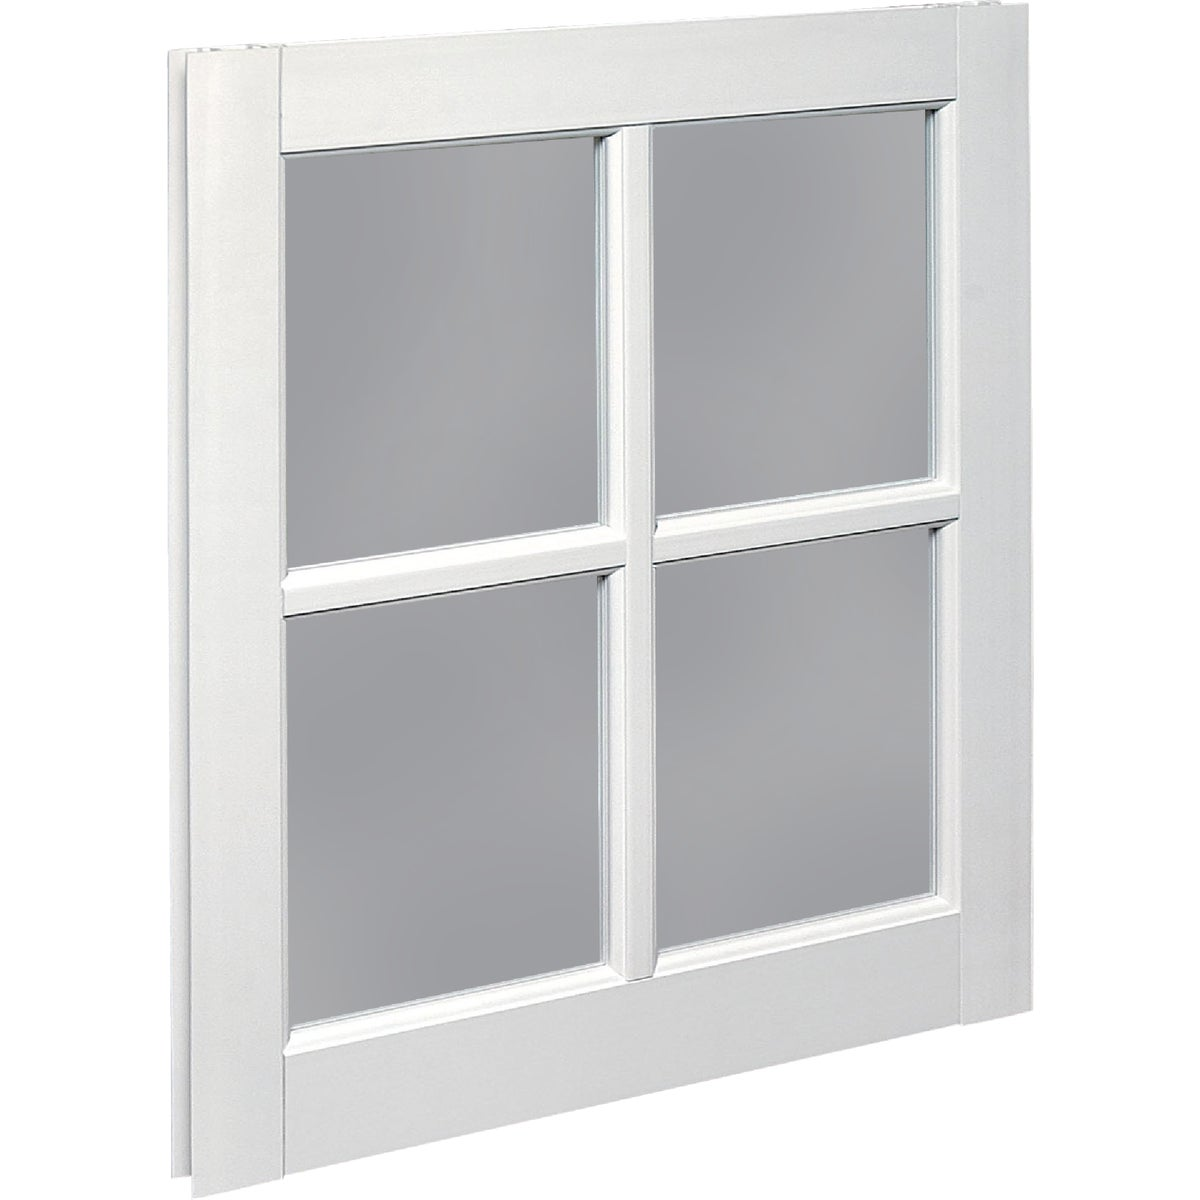 20X25 WHT PVC BARN SASH - BS2025W by Northview Window